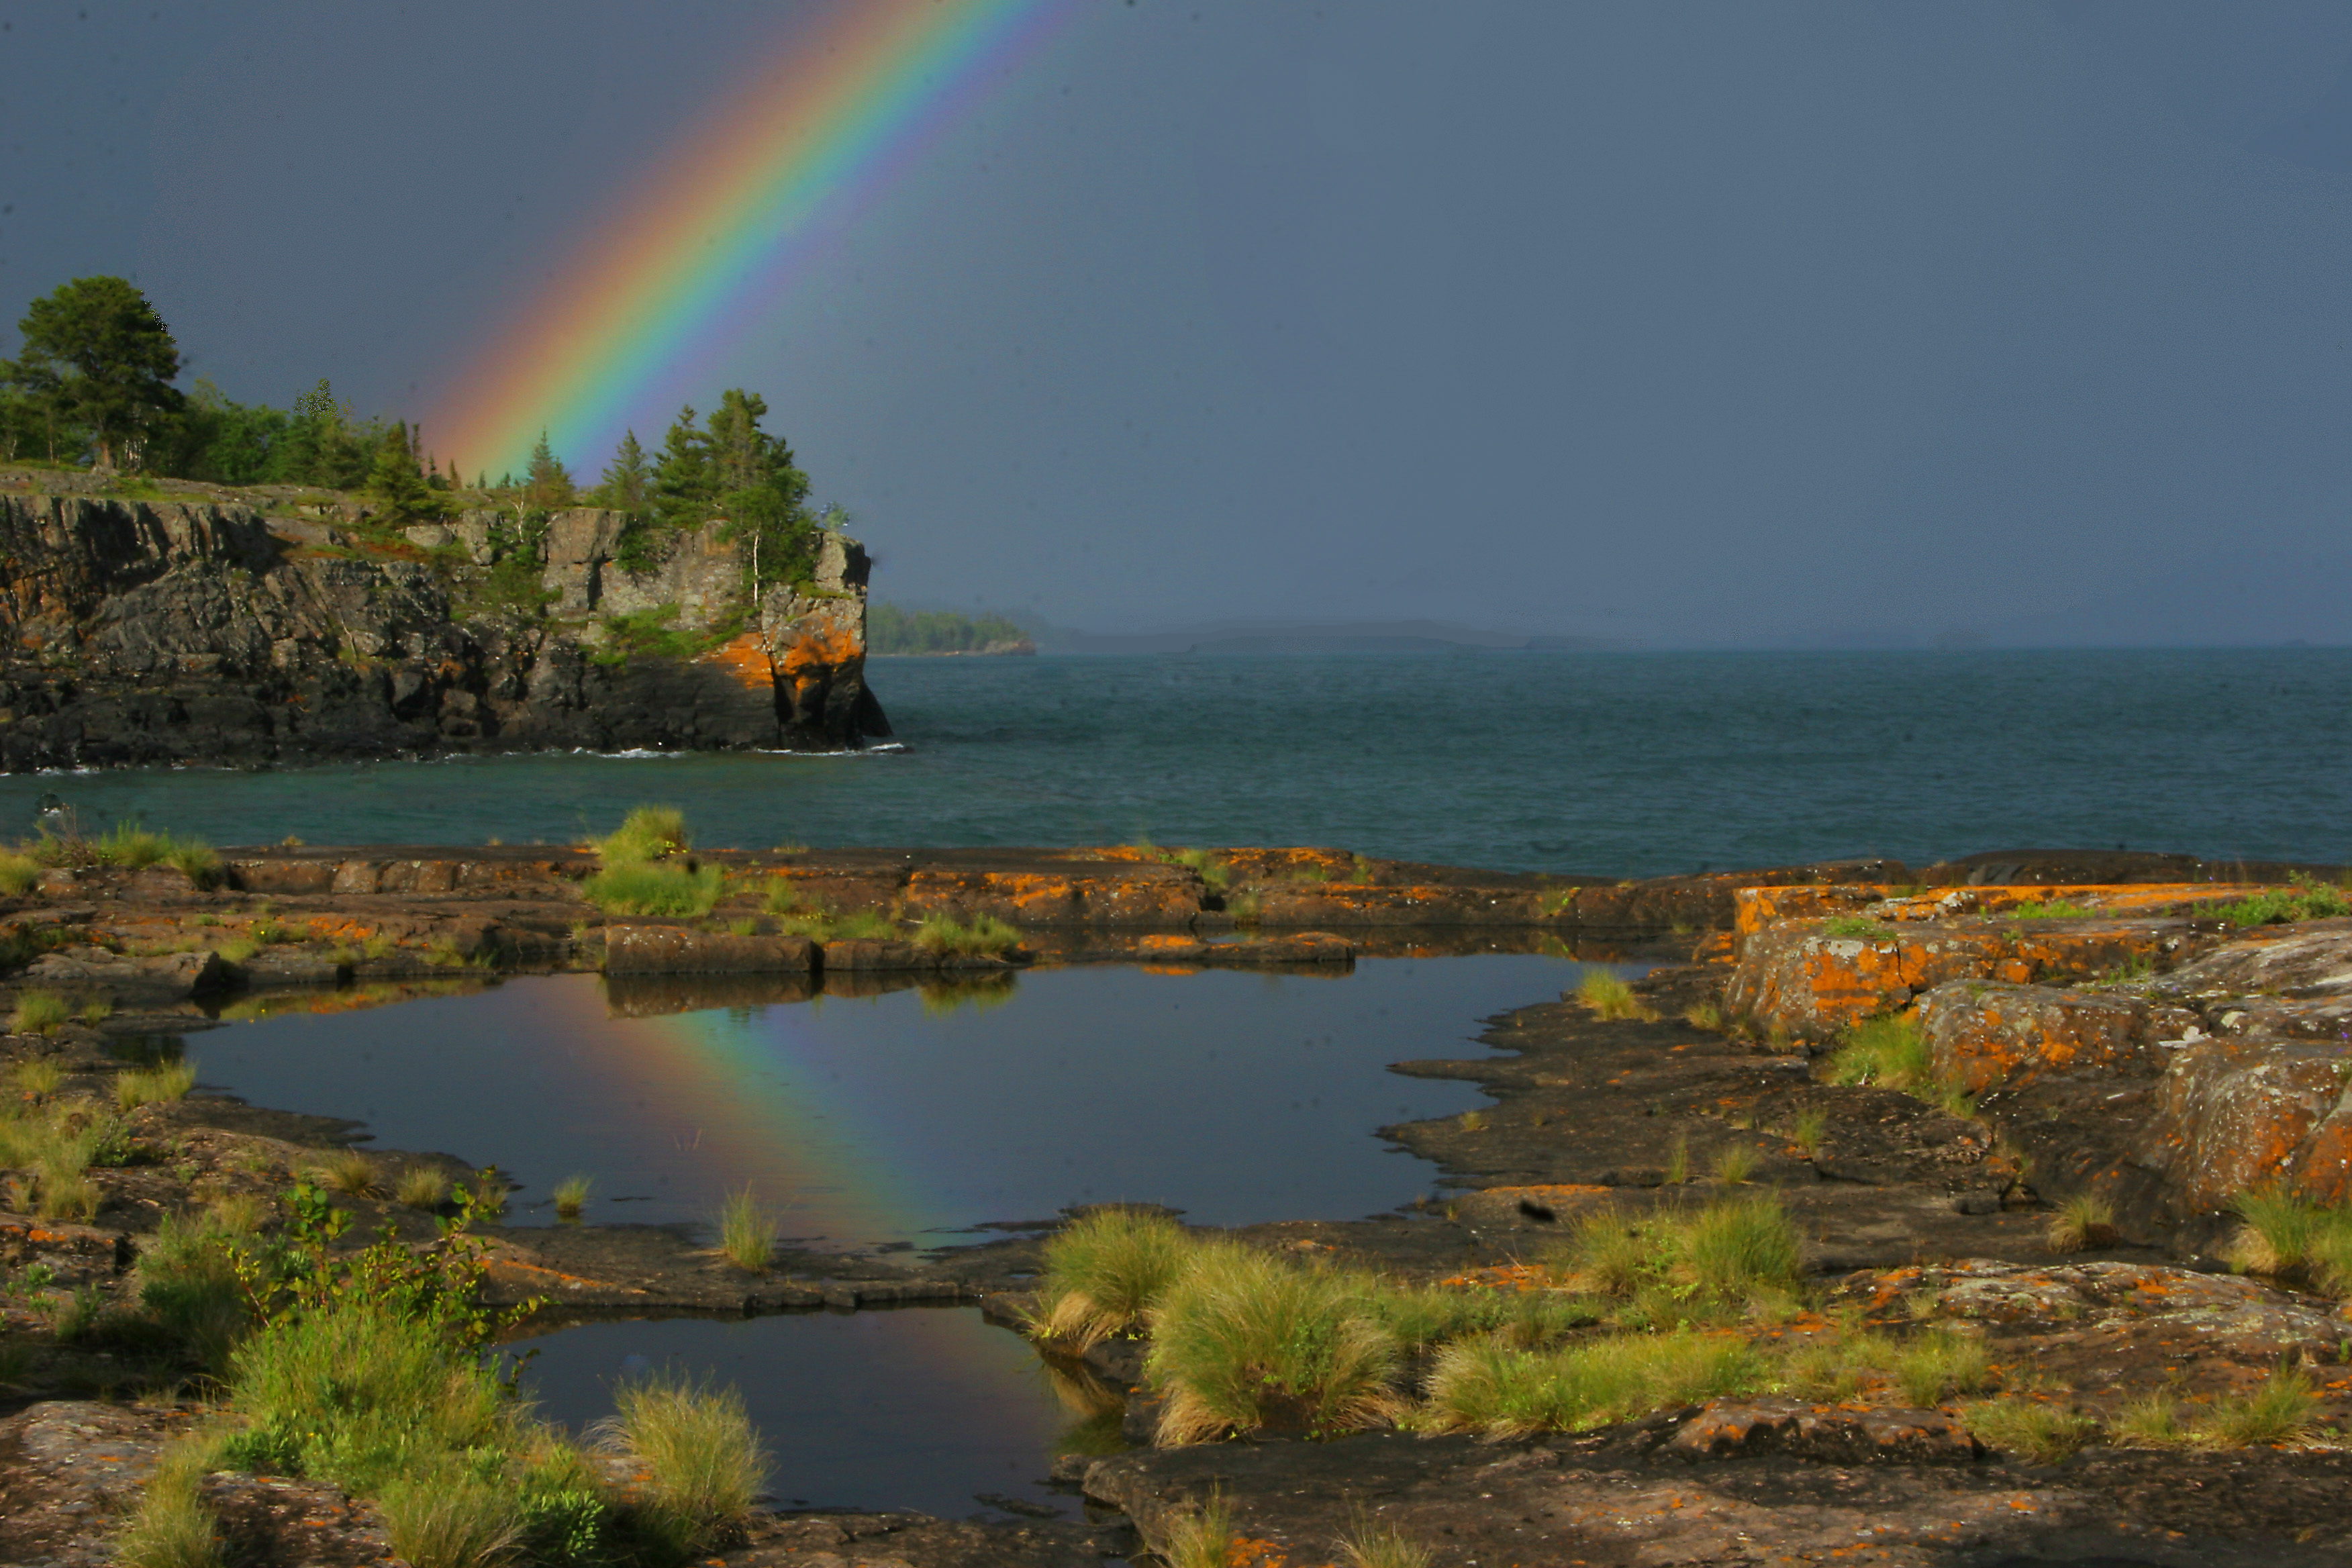 Tee Harbor Rainbow